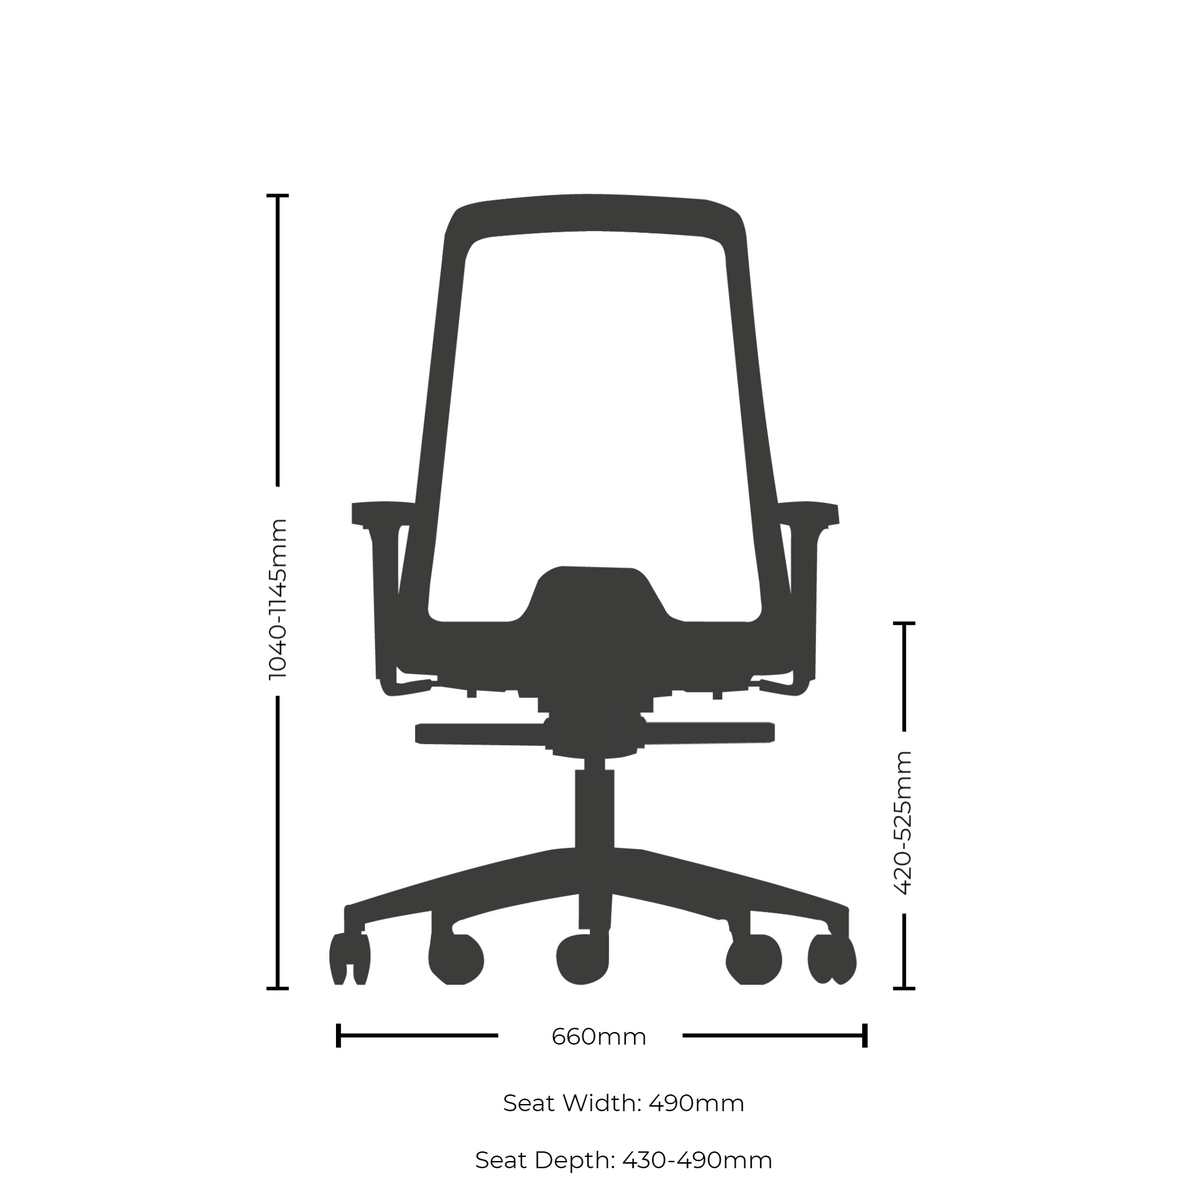 Dimensions for Interstuhl EVERYIS1 Office Task Chair 142E